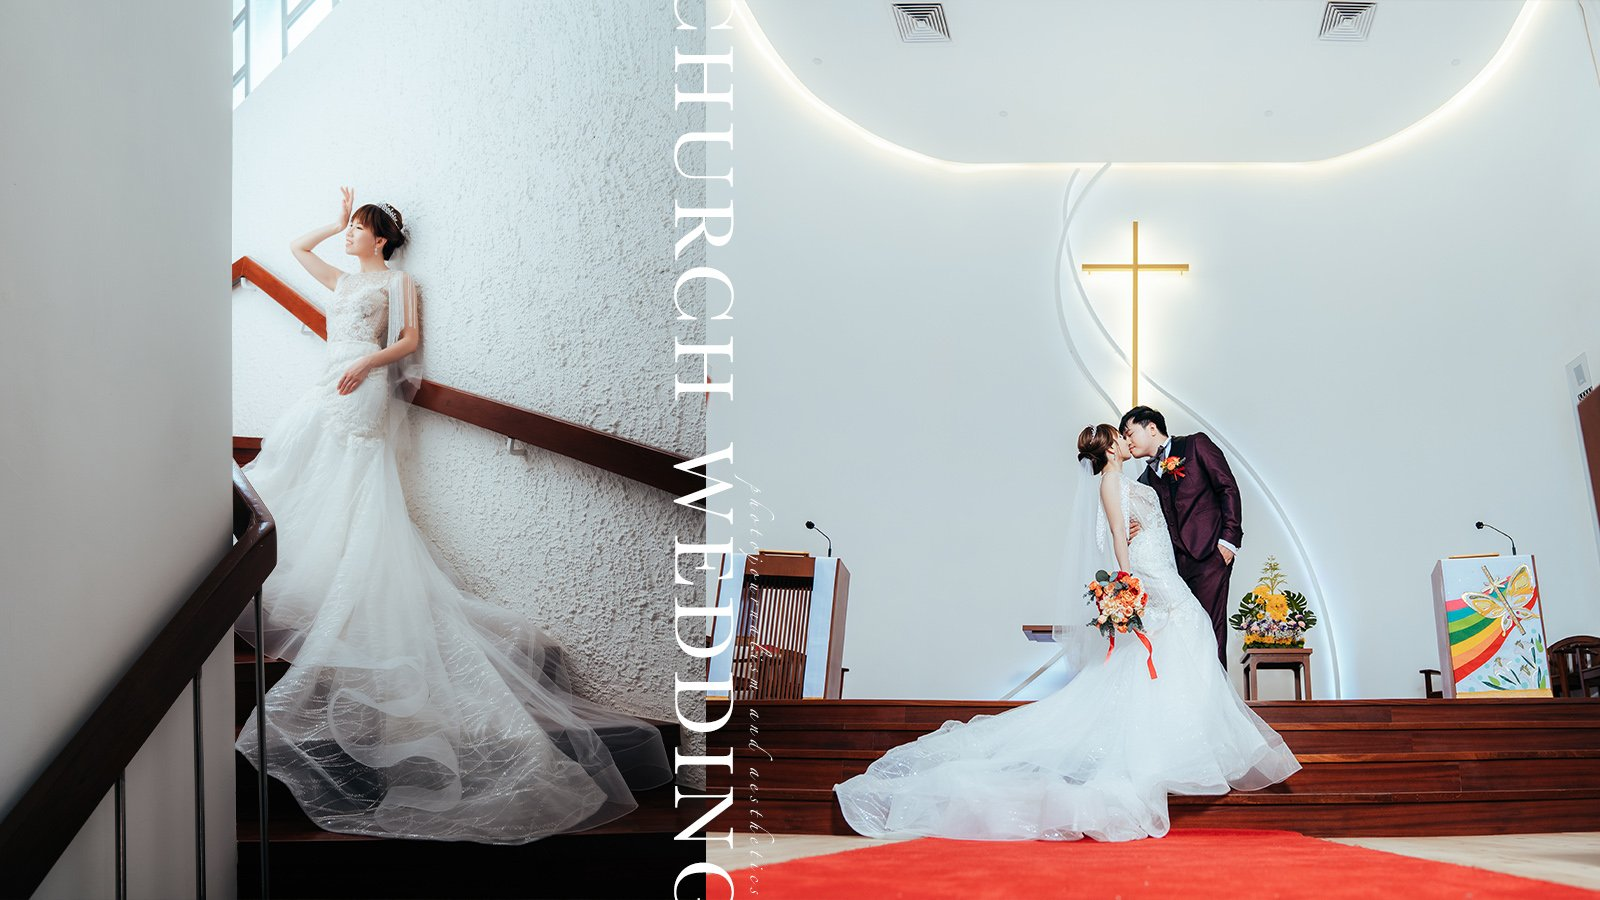 【Love is the Greatest Blessing】  Hsin En Lutheran Church Wedding Photography  信恩堂婚禮攝影